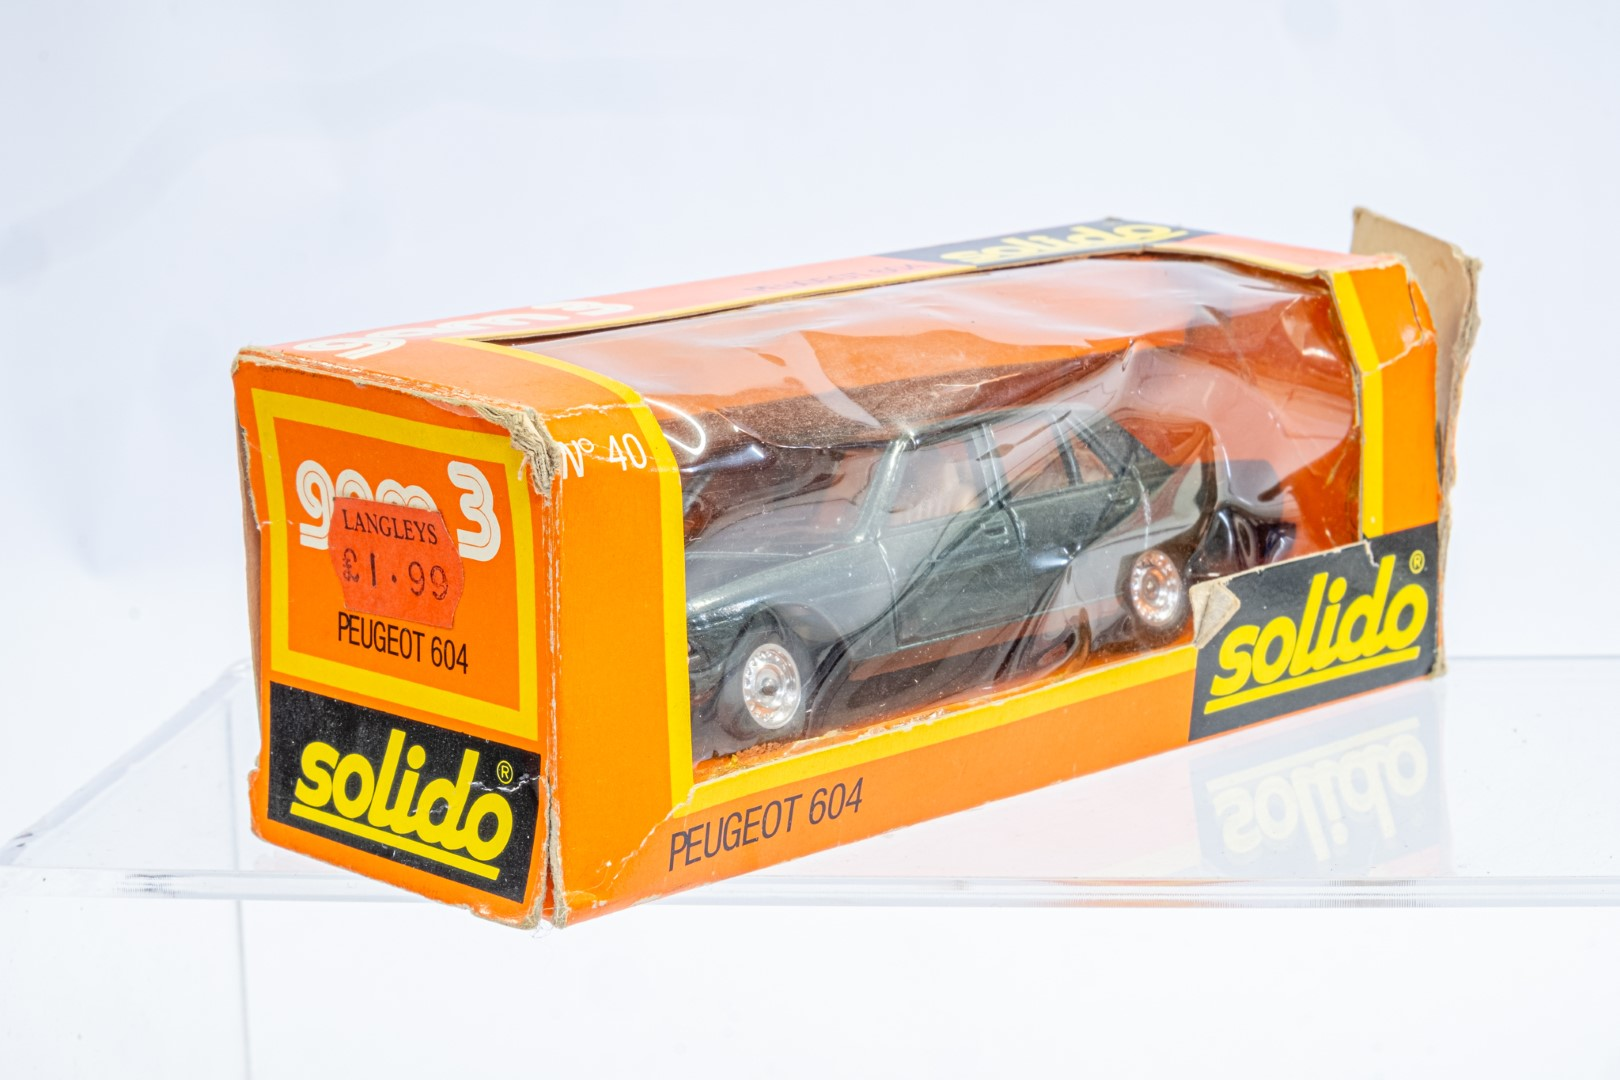 Solido 40 Peugeot 604 - Image 2 of 8